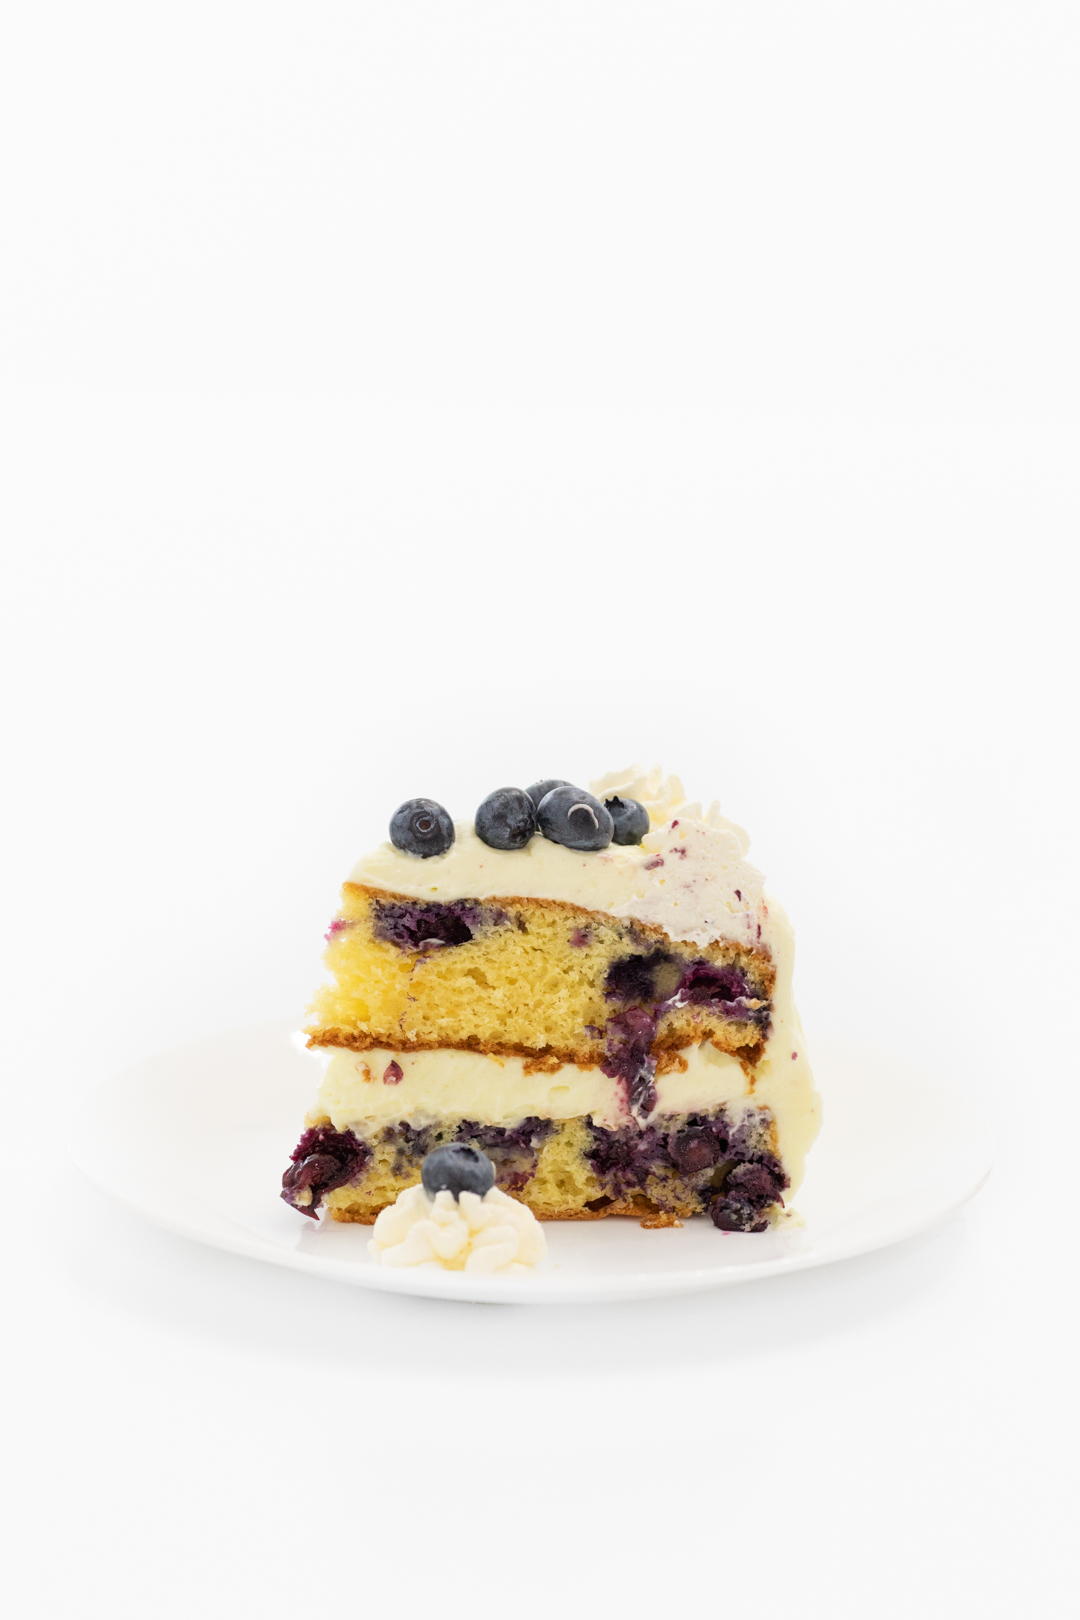 Tall slice of blueberry cake with fresh blueberries